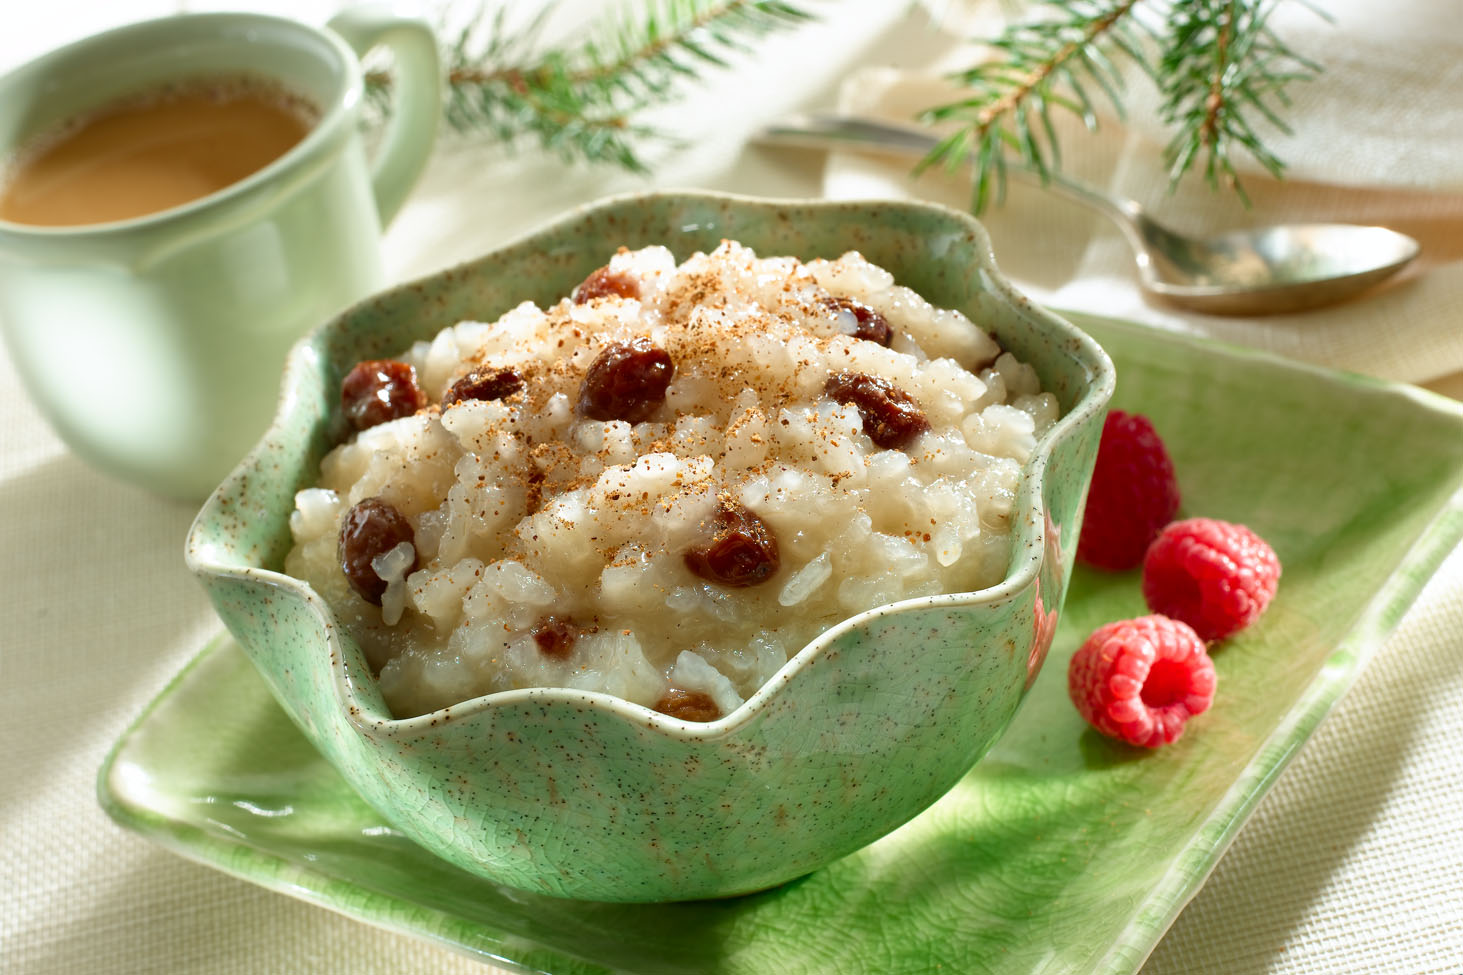 Arroz con Dulce - Coconut Rice Pudding